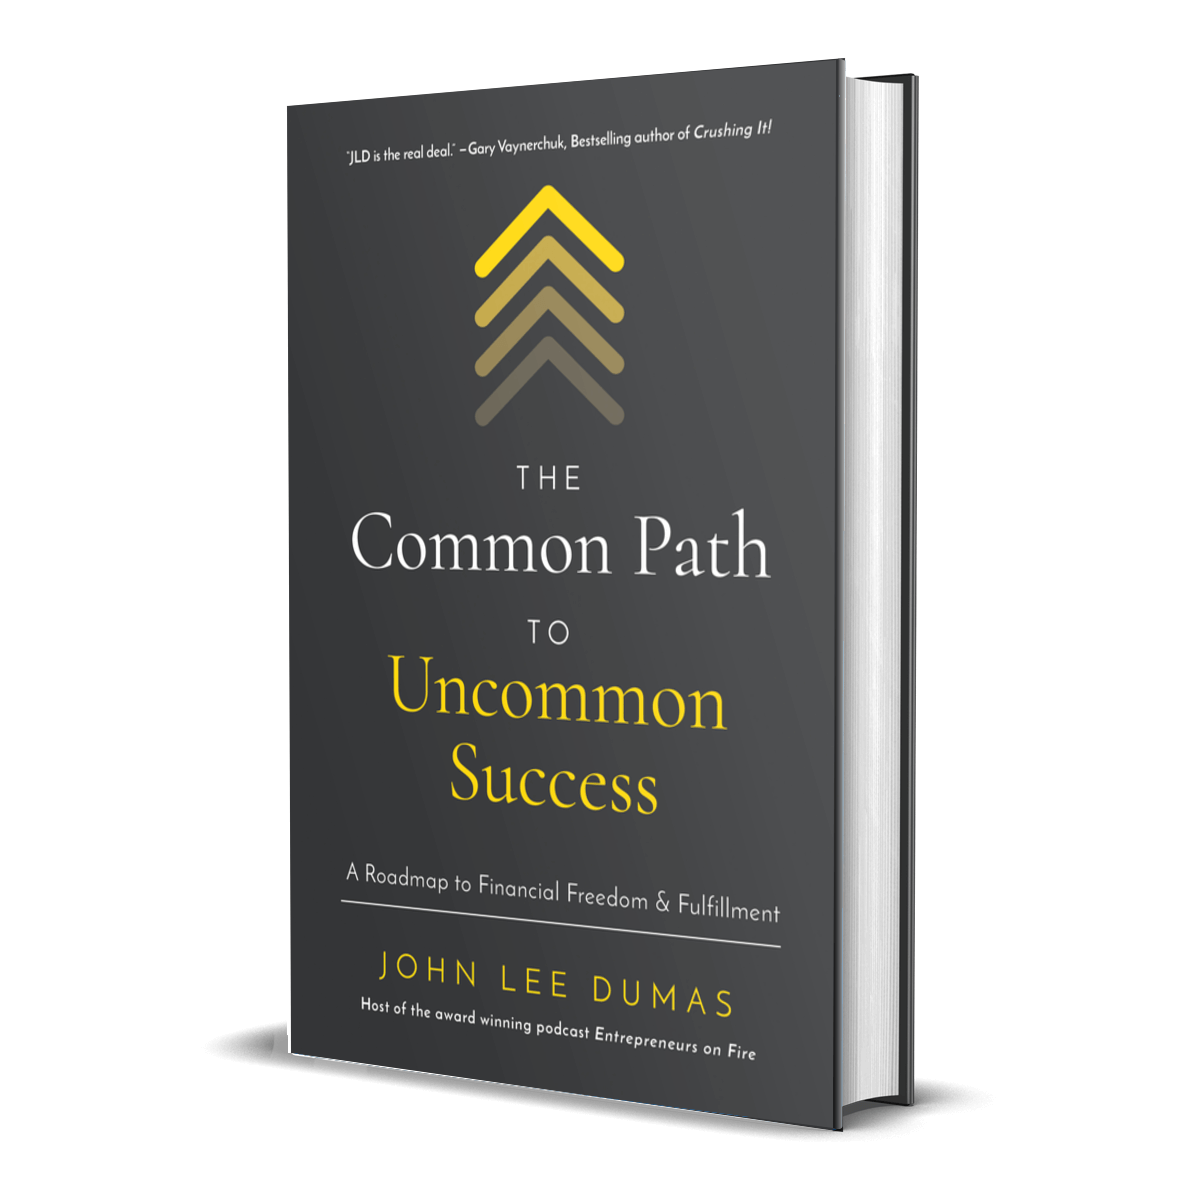 The Common Path to Uncommon Success by John Lee Dumas